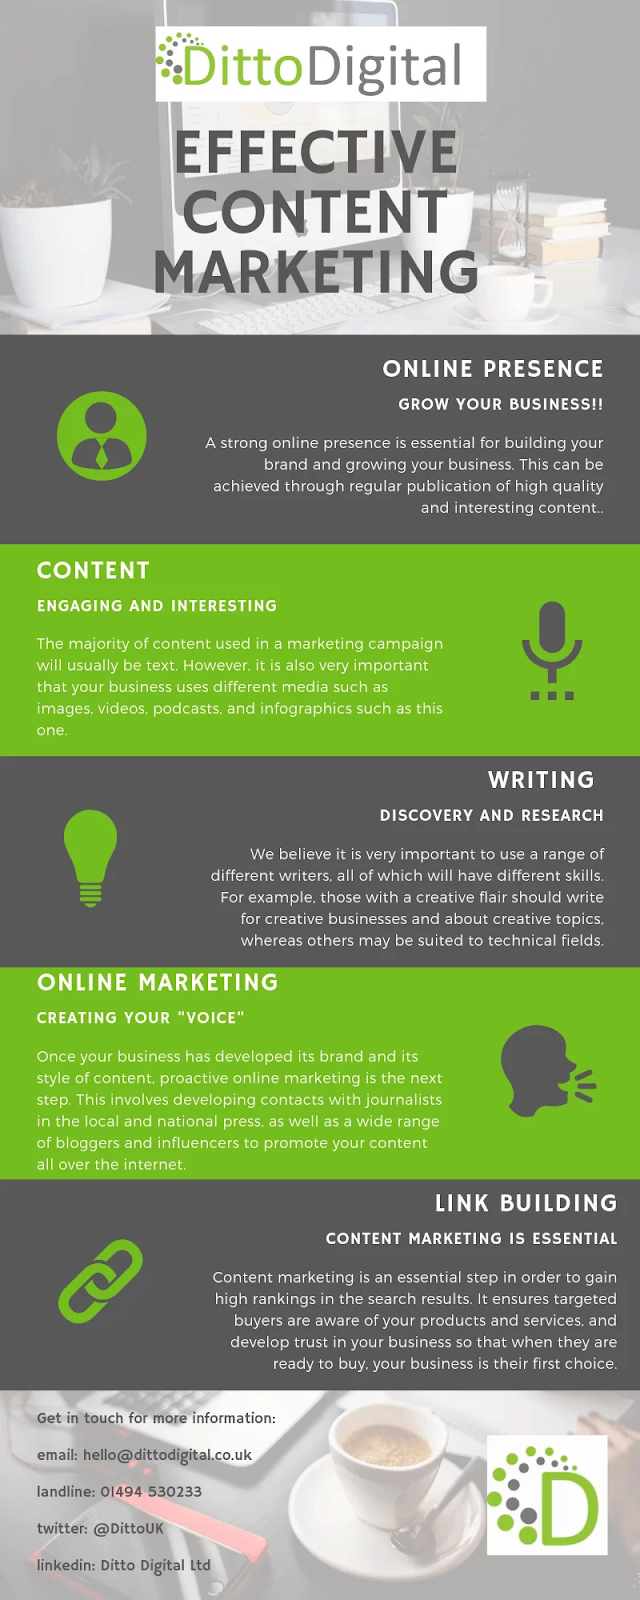 Infographic on effective content marketing.